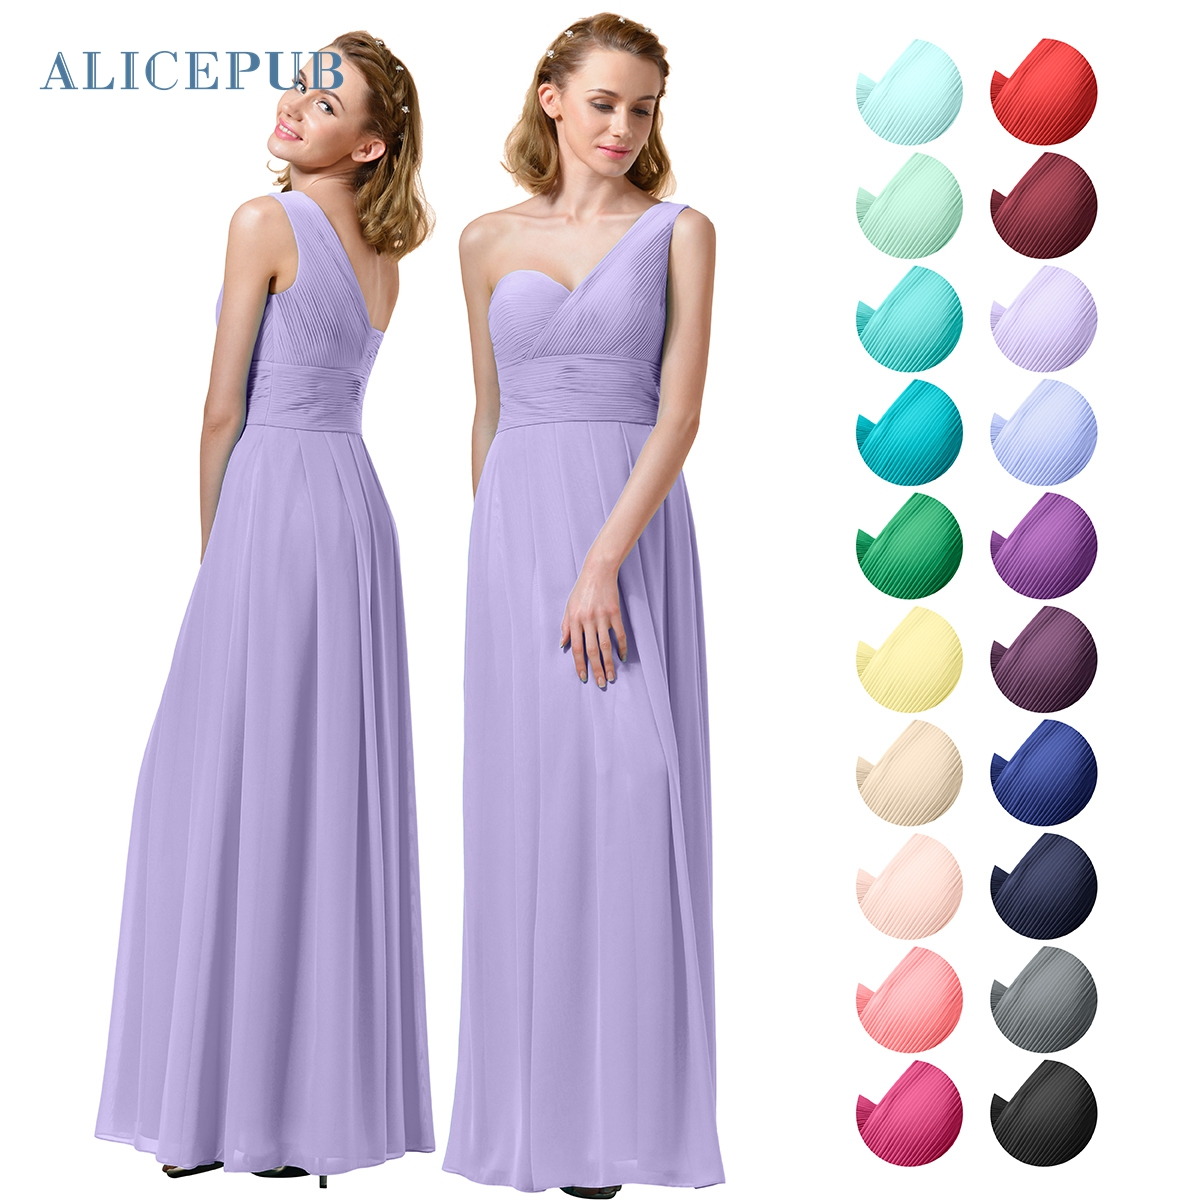 Compare prices on bridesmaid dress maxi online shoppingbuy low alicepub bridesmaid dresses long one shoulder chiffon maxi dress wedding prom party ball gowns multi colors ombrellifo Images